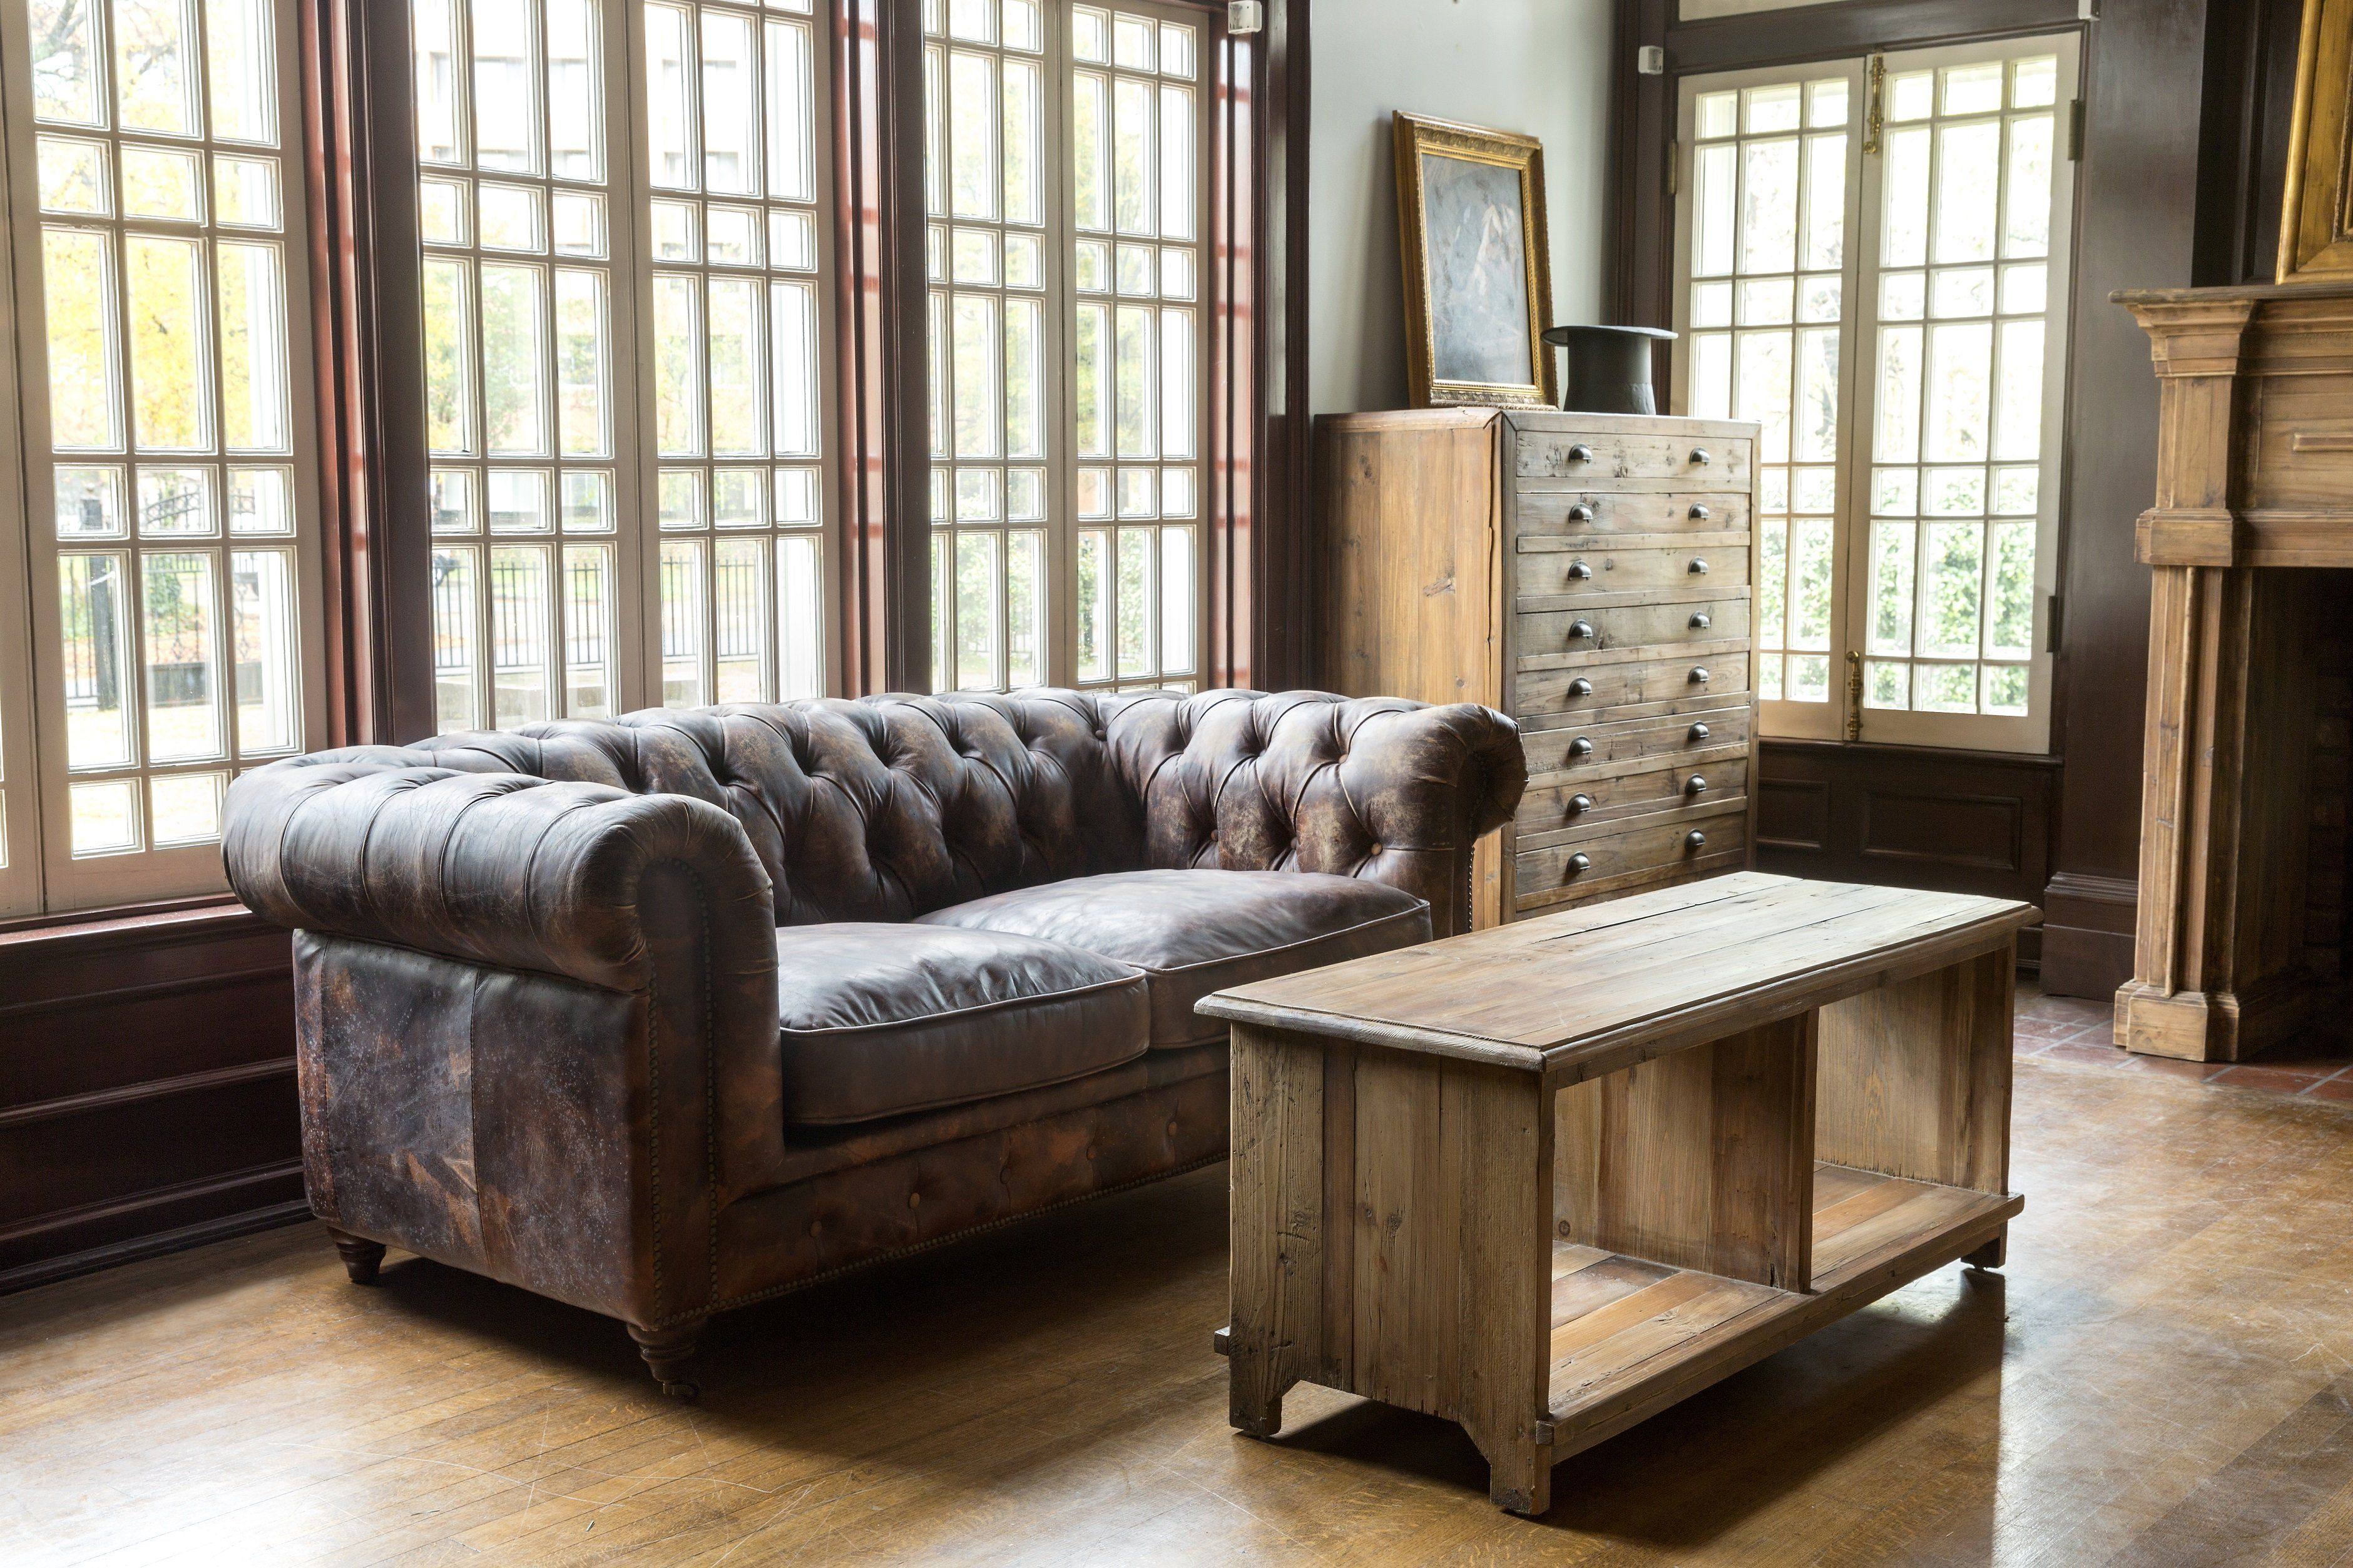 Aged leather cattlemans club sofa classic and dignifie d